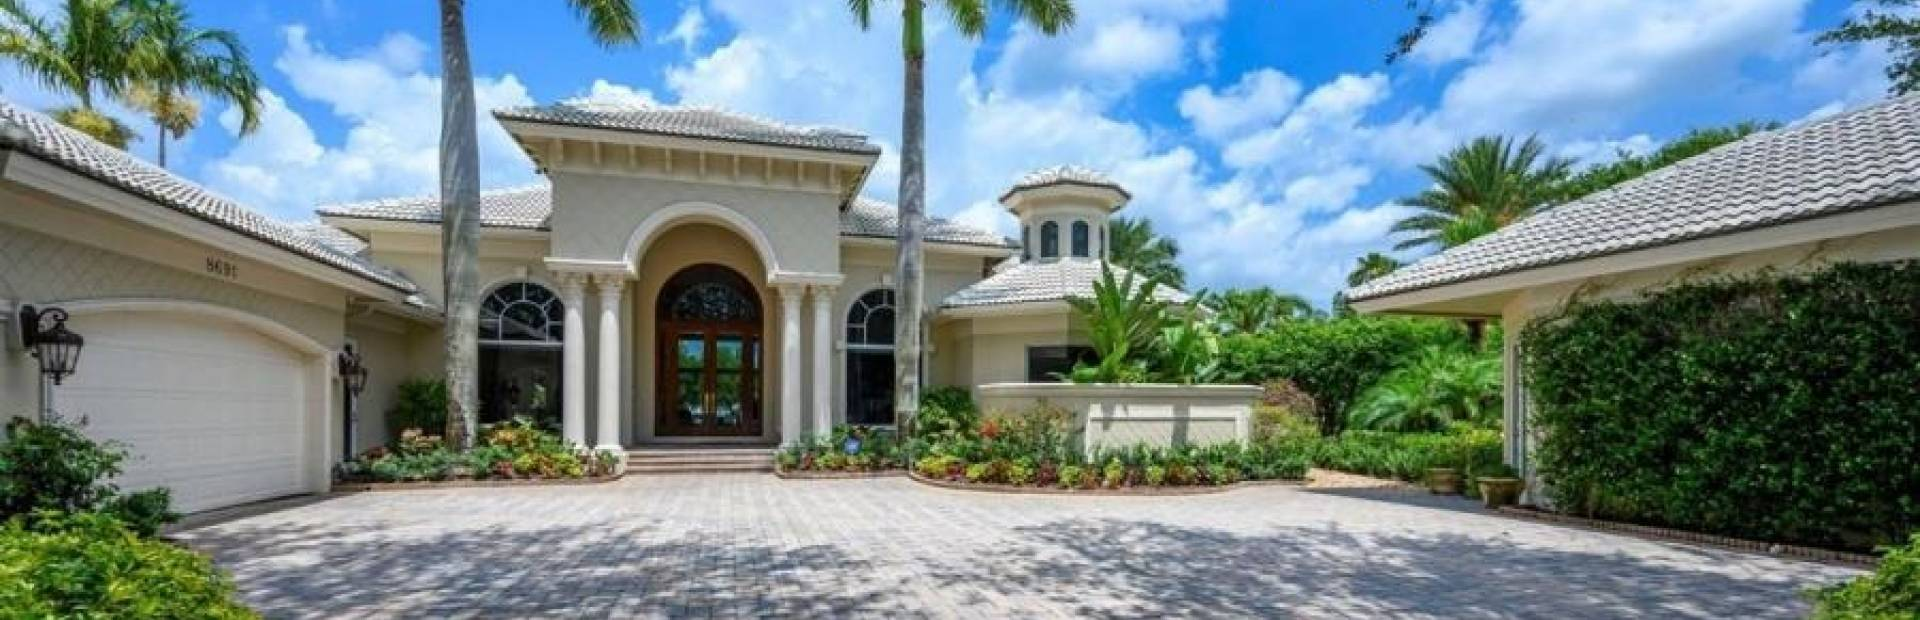 Jupiter, Florida, United States, ,Residential,For Sale,765910